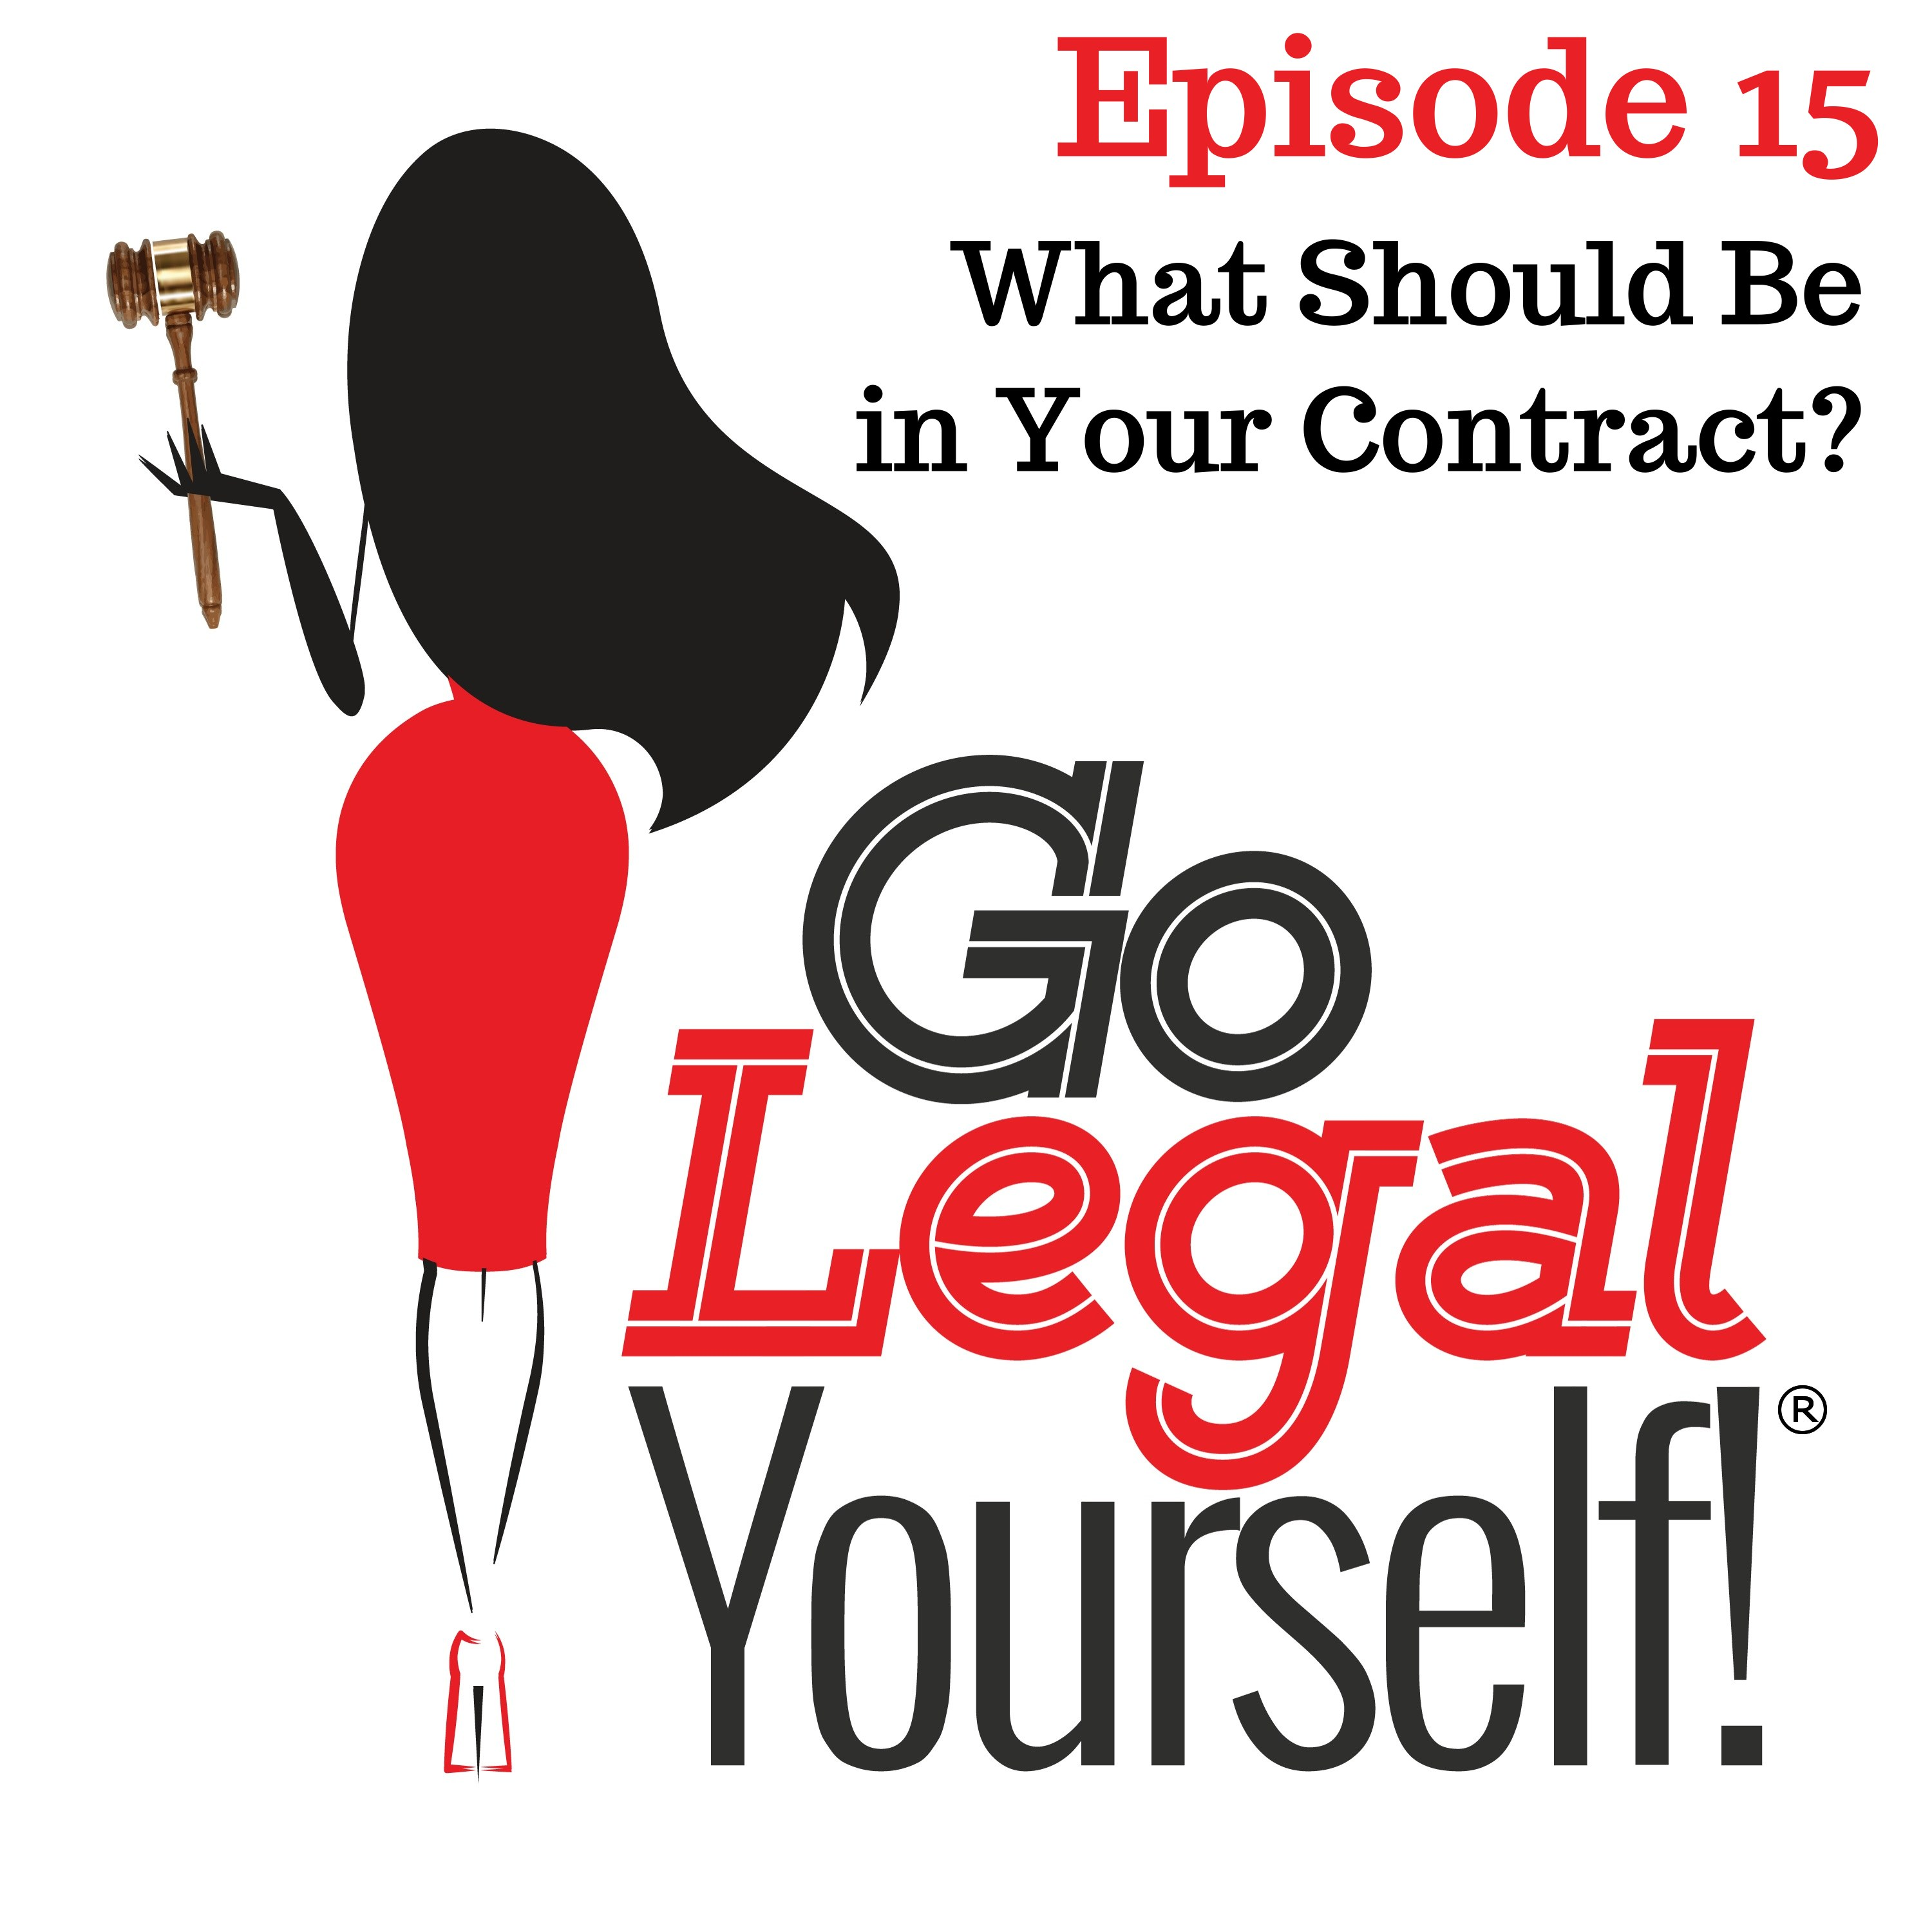 Ep. 15 What Should be in Your Contract